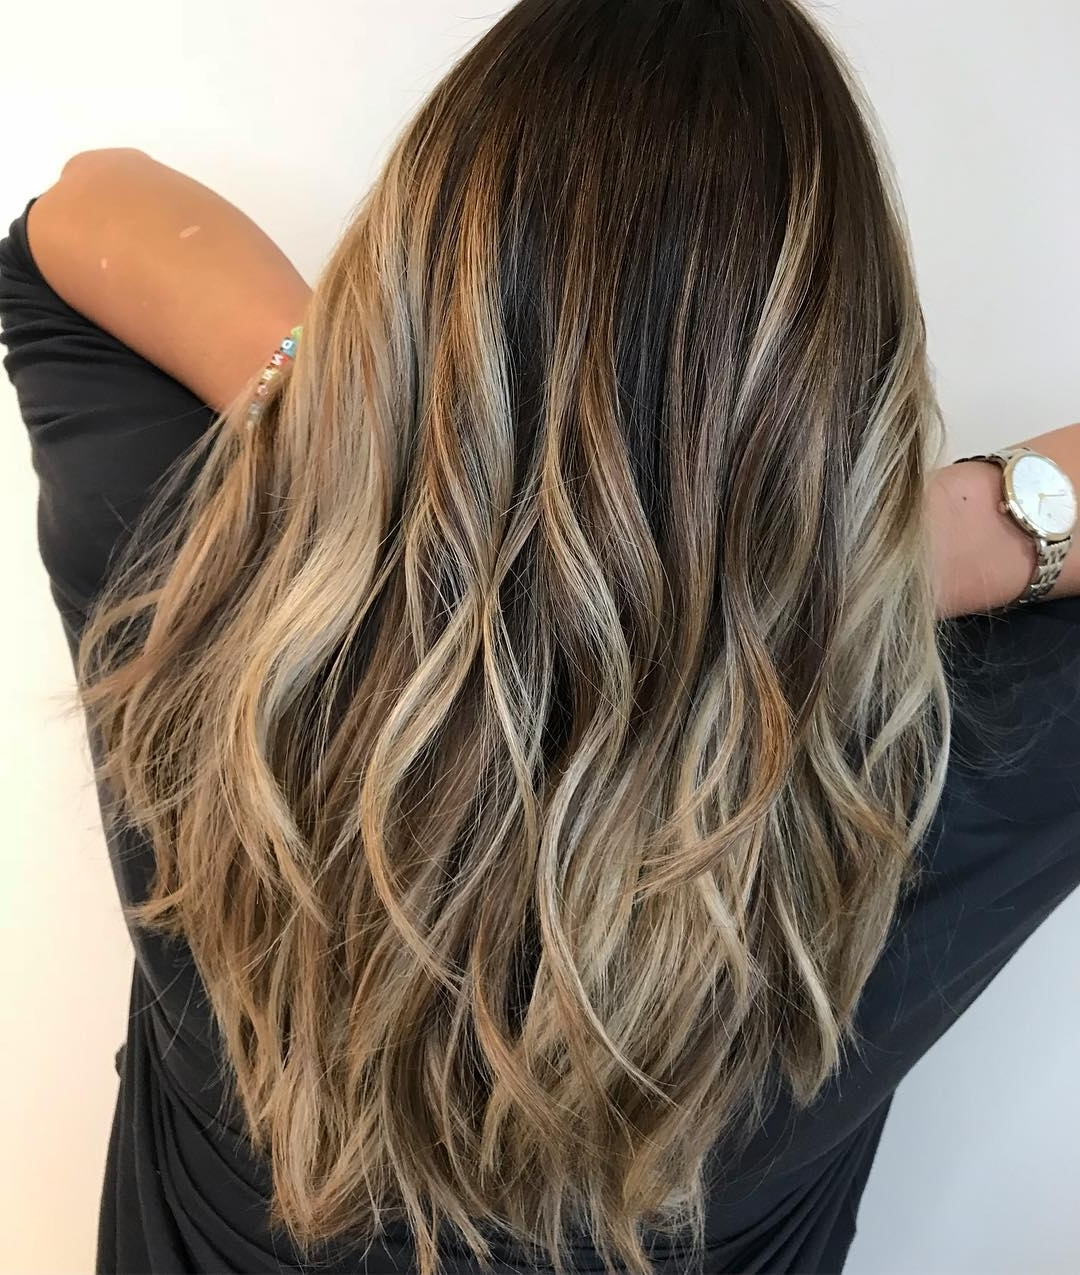 30 Balayage Highlights For An Ultimate Stylish Look – Haircuts In Most Current Balayage Blonde Hairstyles With Layered Ends (View 3 of 20)